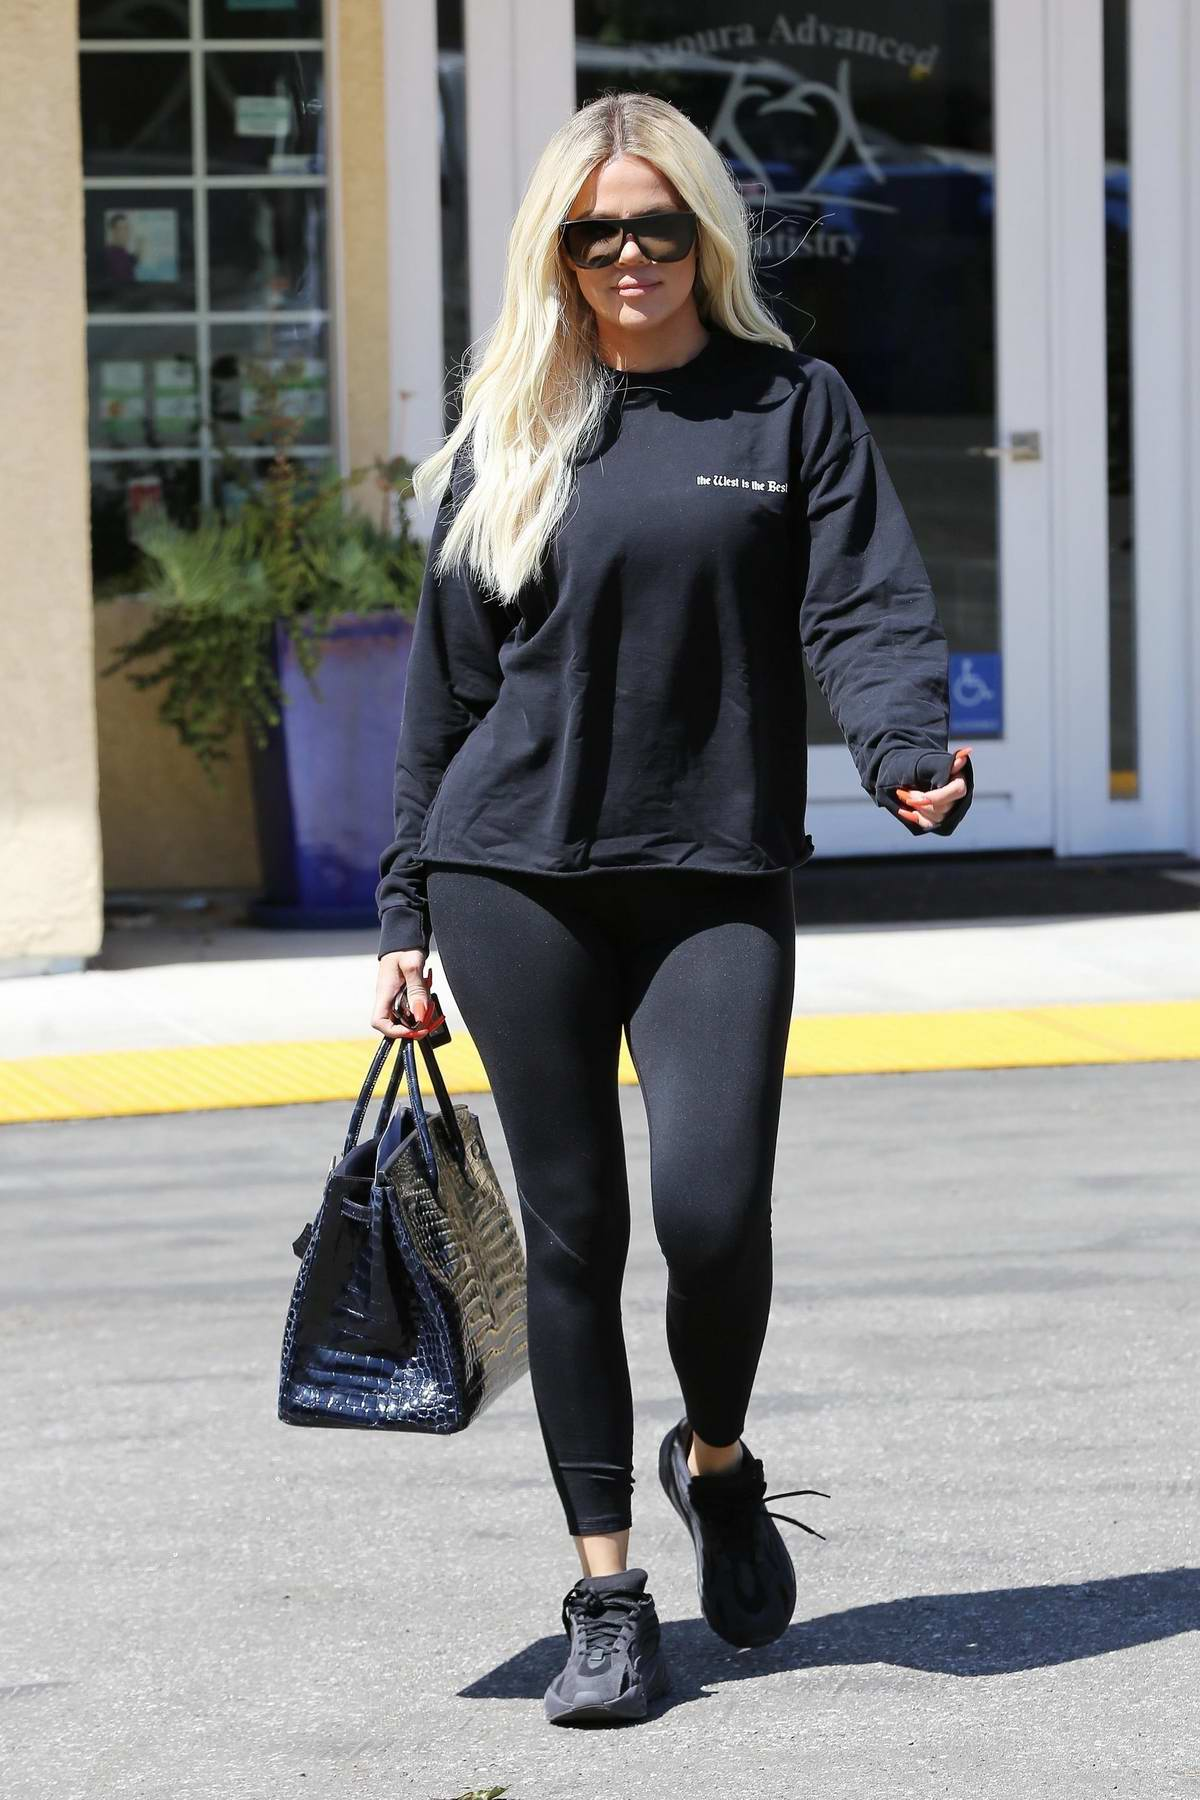 Khloe Kardashian dons all-black during a trip to the dentist office in Los Angeles